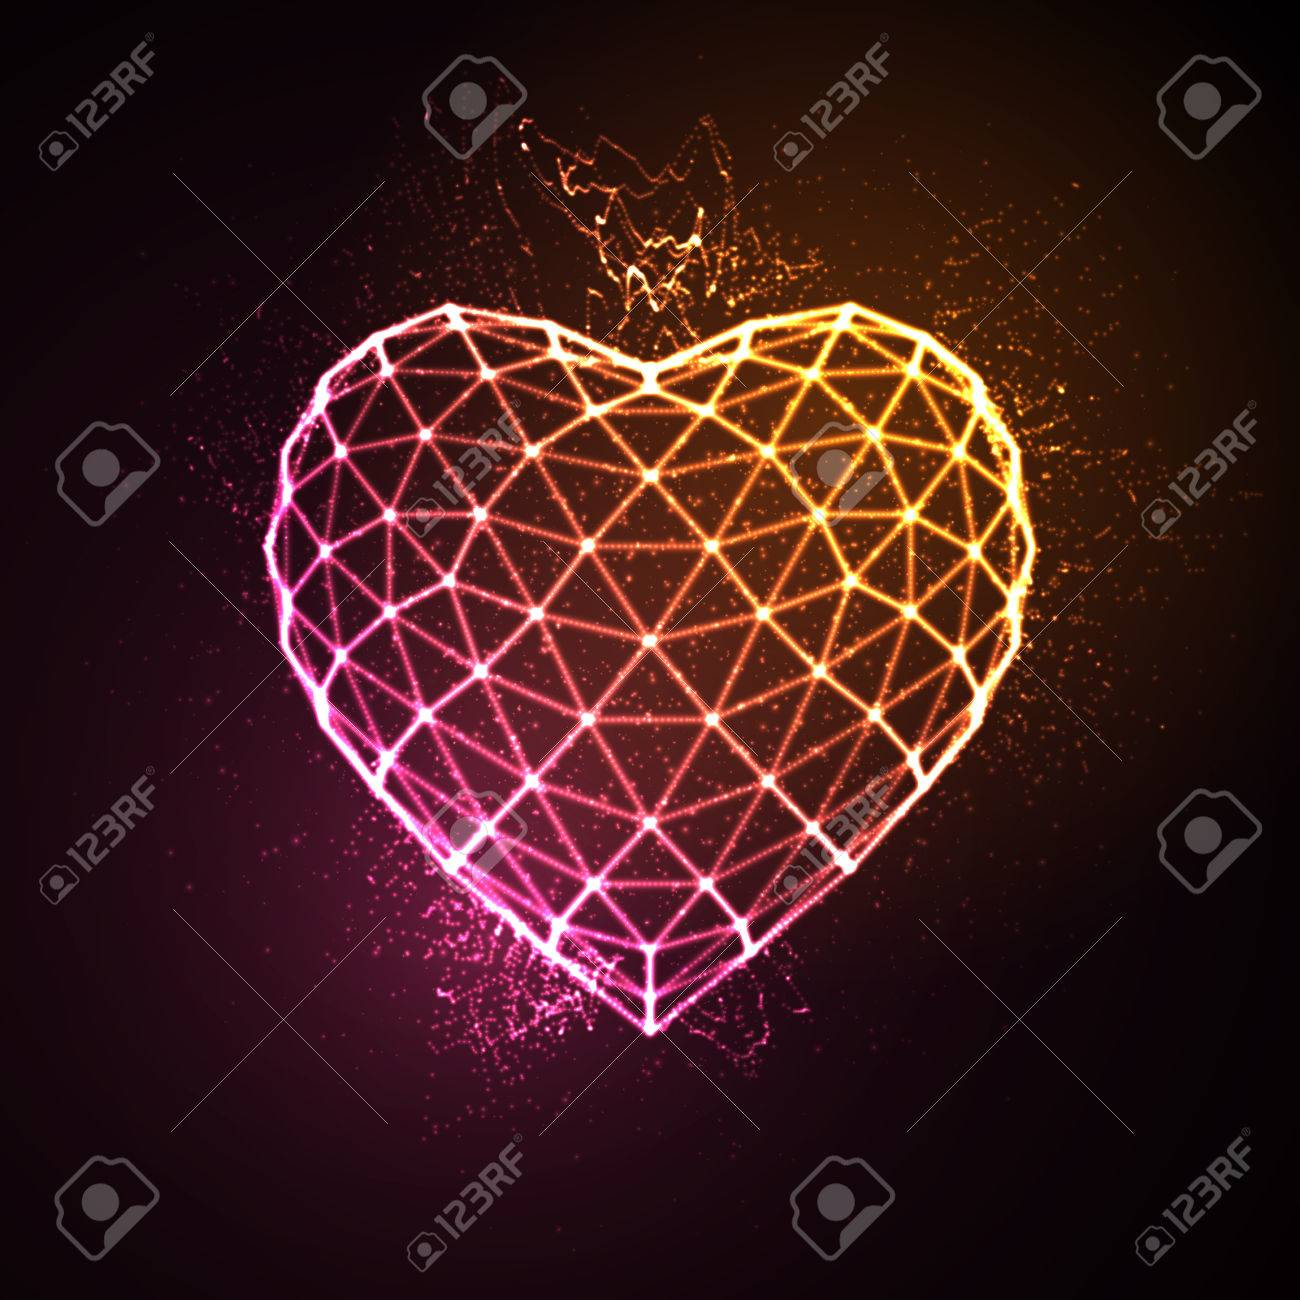 Happy Valentines Day. 3D illuminated neon heart of glowing particles and wireframe. Vector illustration. - 53133381